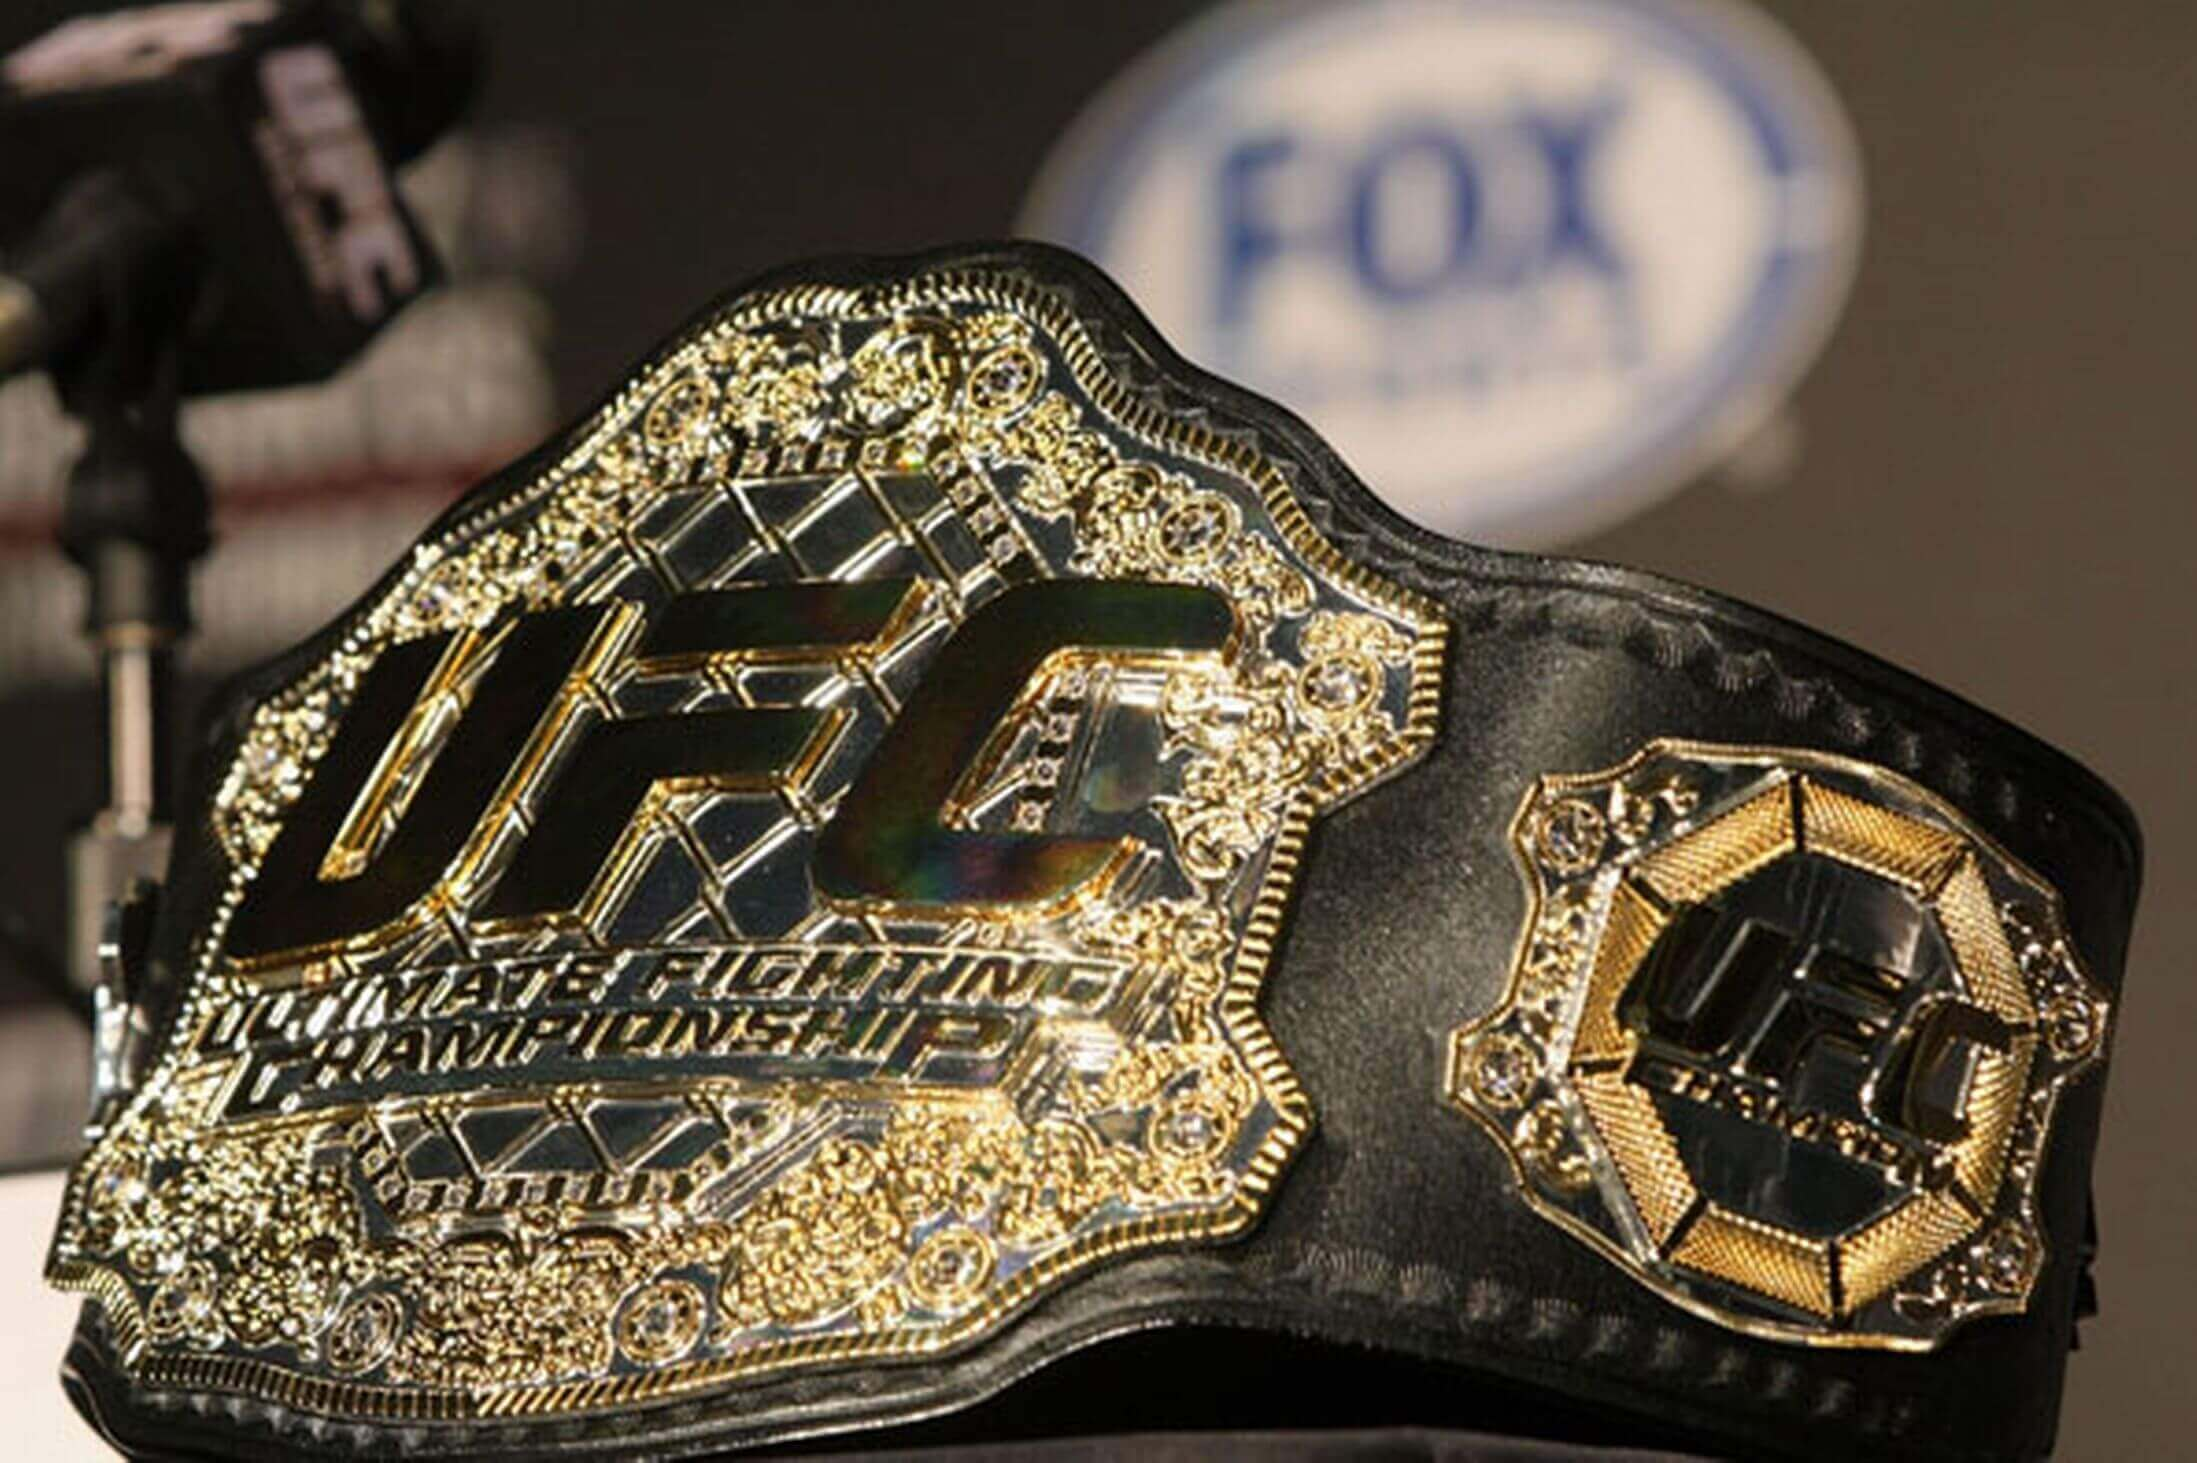 What Ufc Divisions Pull Their Own Weight Bigonsports